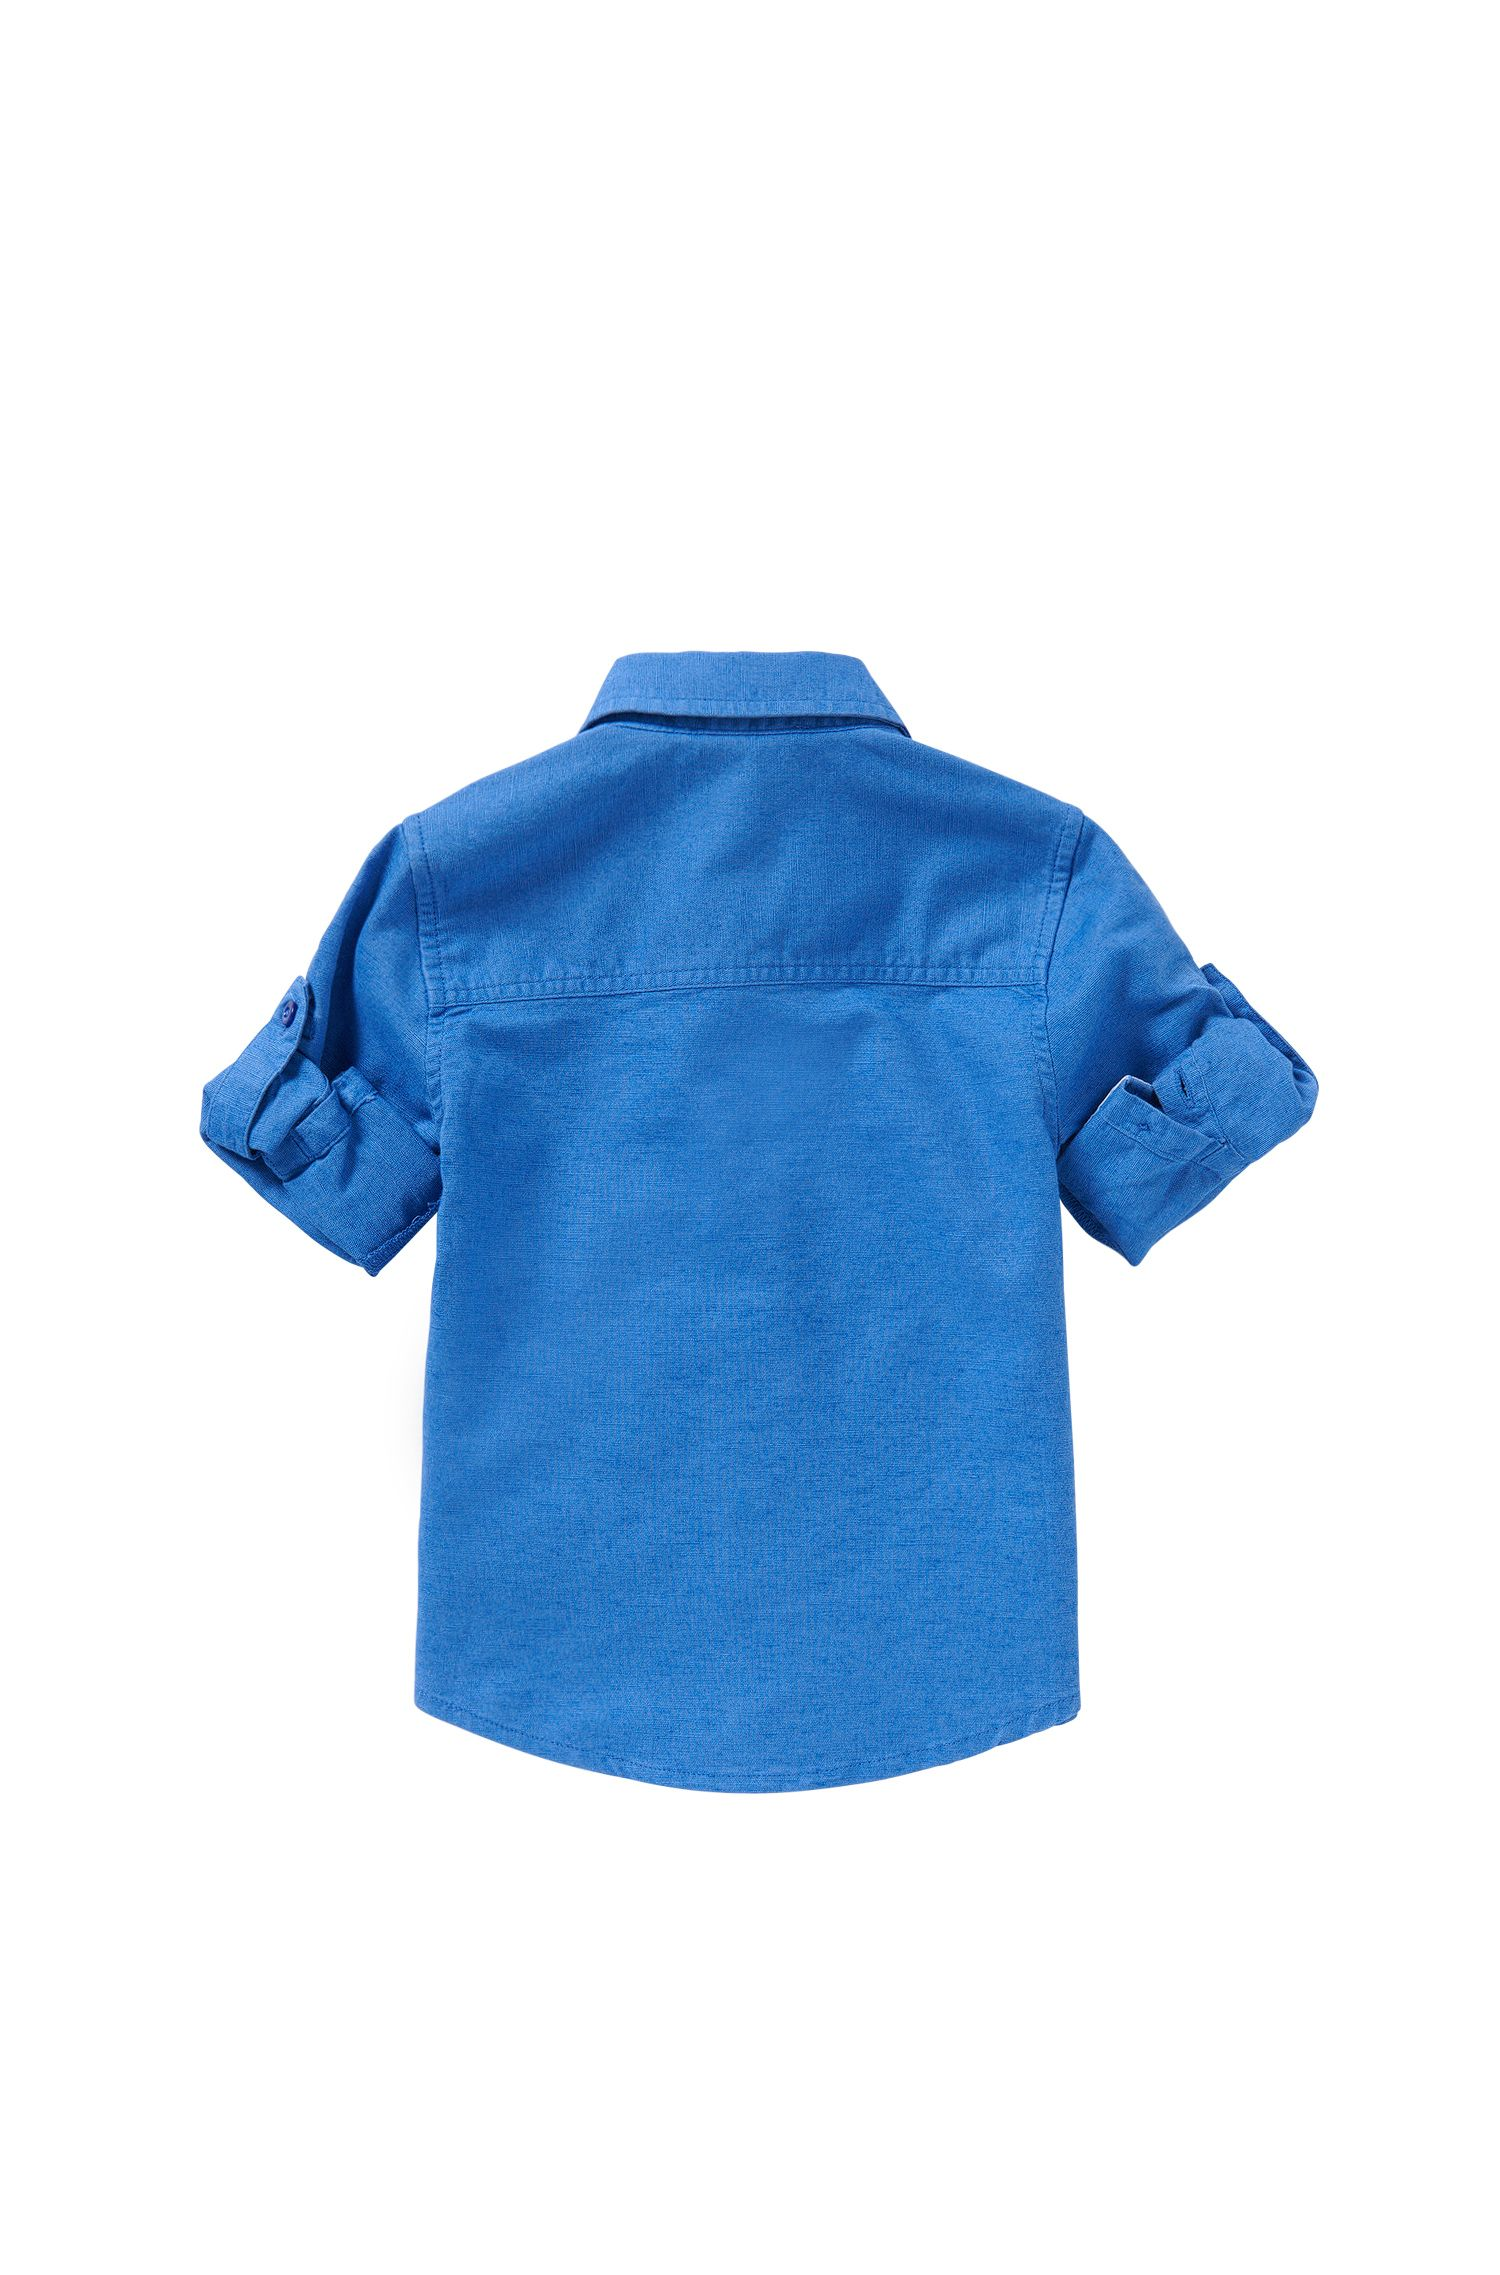 Newborns' shirt made from a cotton blend in jeans look: 'J05465'